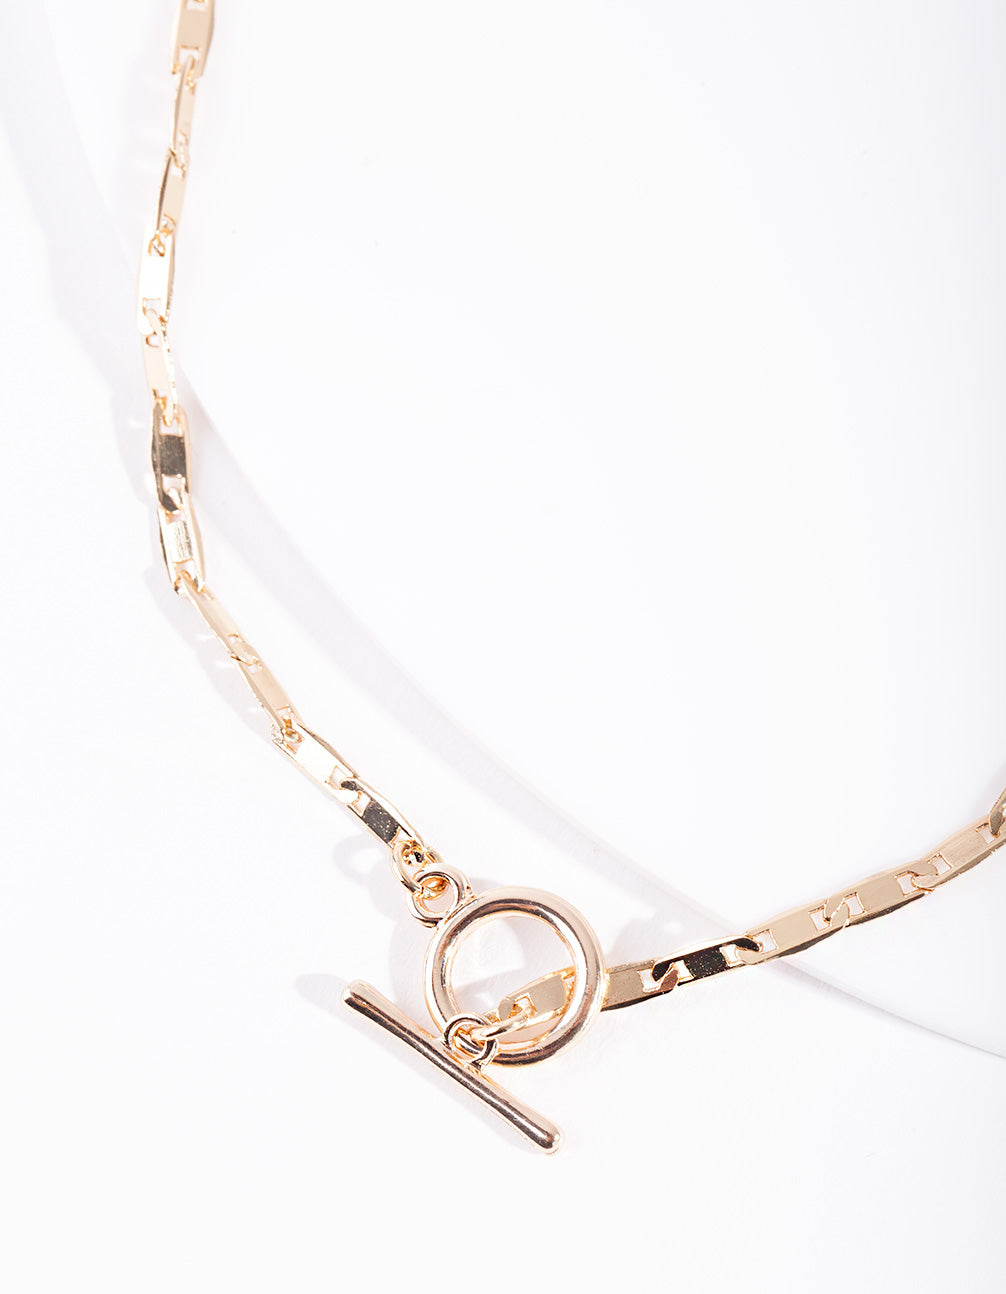 Real Gold Plated Lariat Necklace